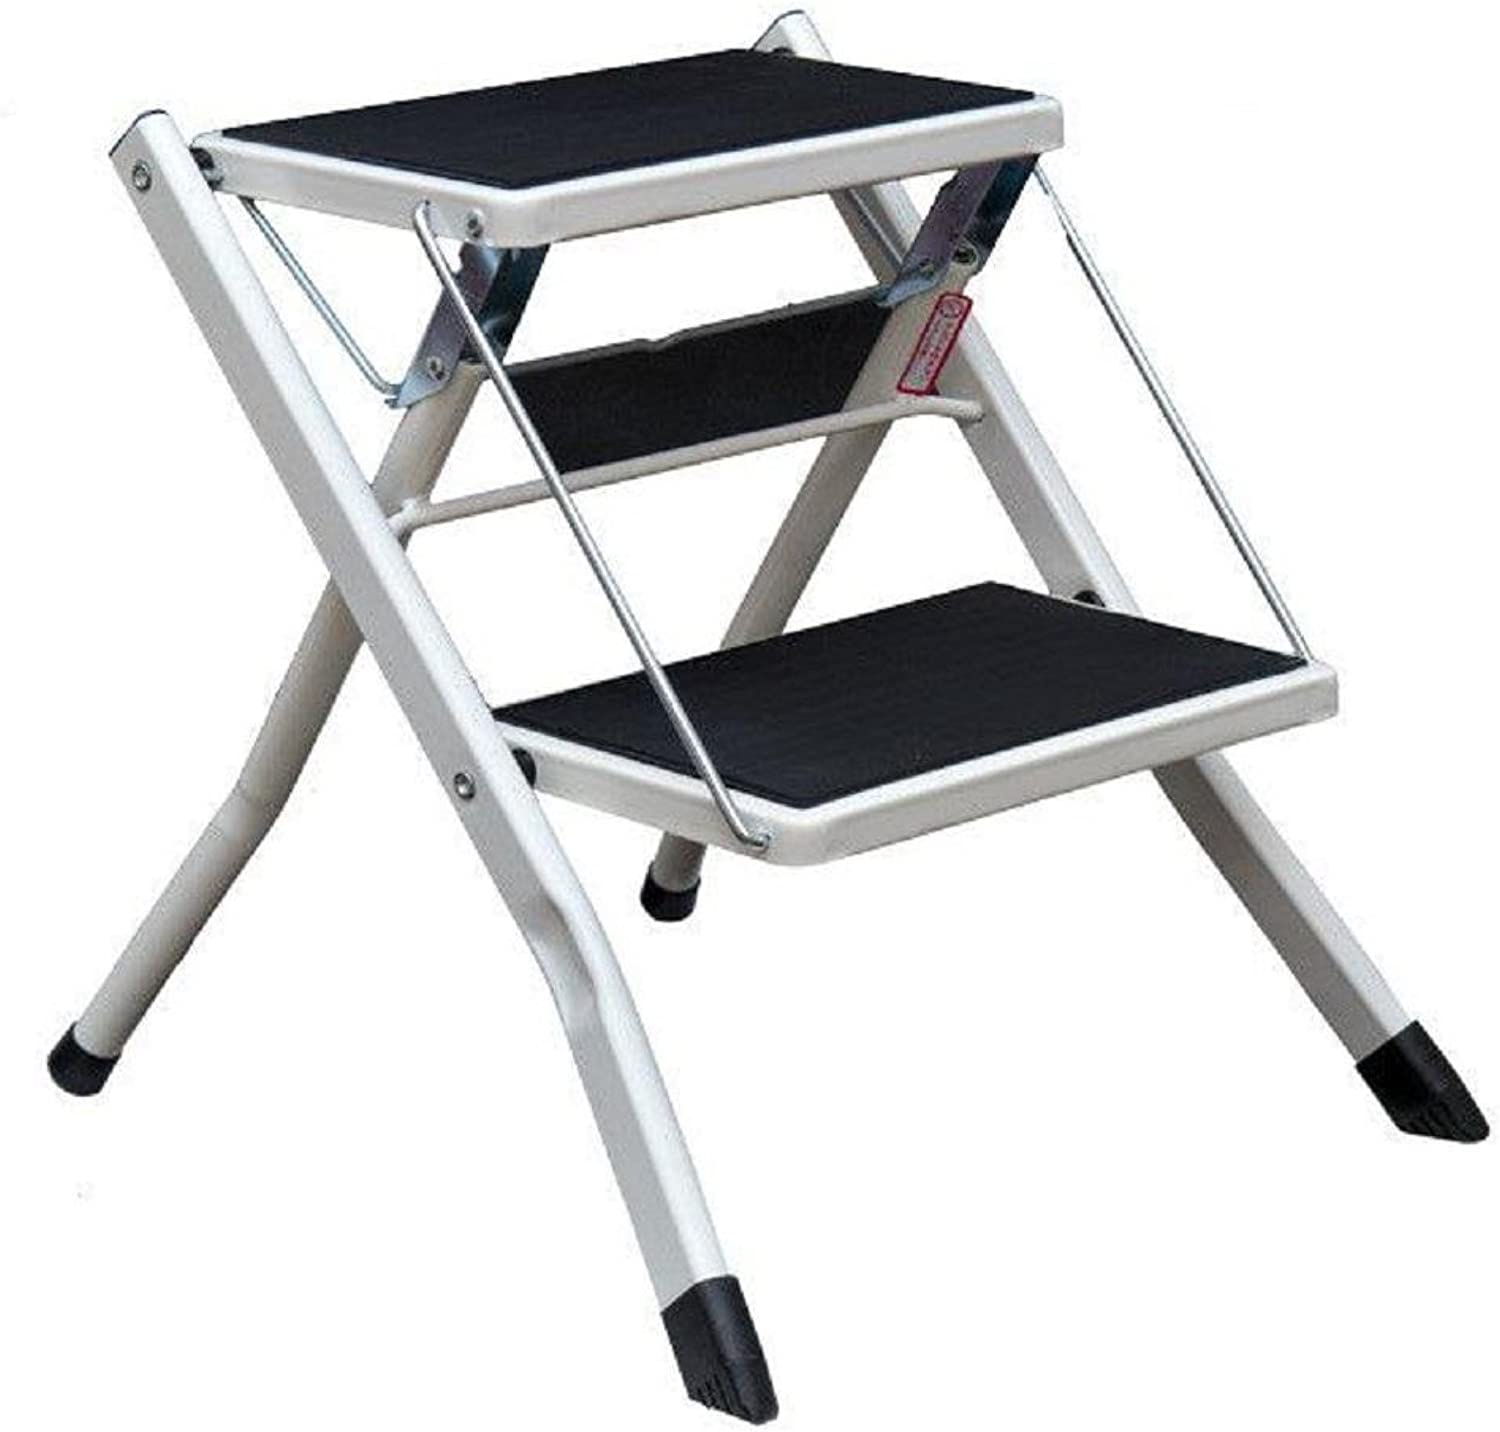 GAOJIAN Pedal Chair 2 Step Ladder Heavy Duty Steel Folding Portable With Anti Slip Ribbed Steps Holds Up To 150 Kg , a